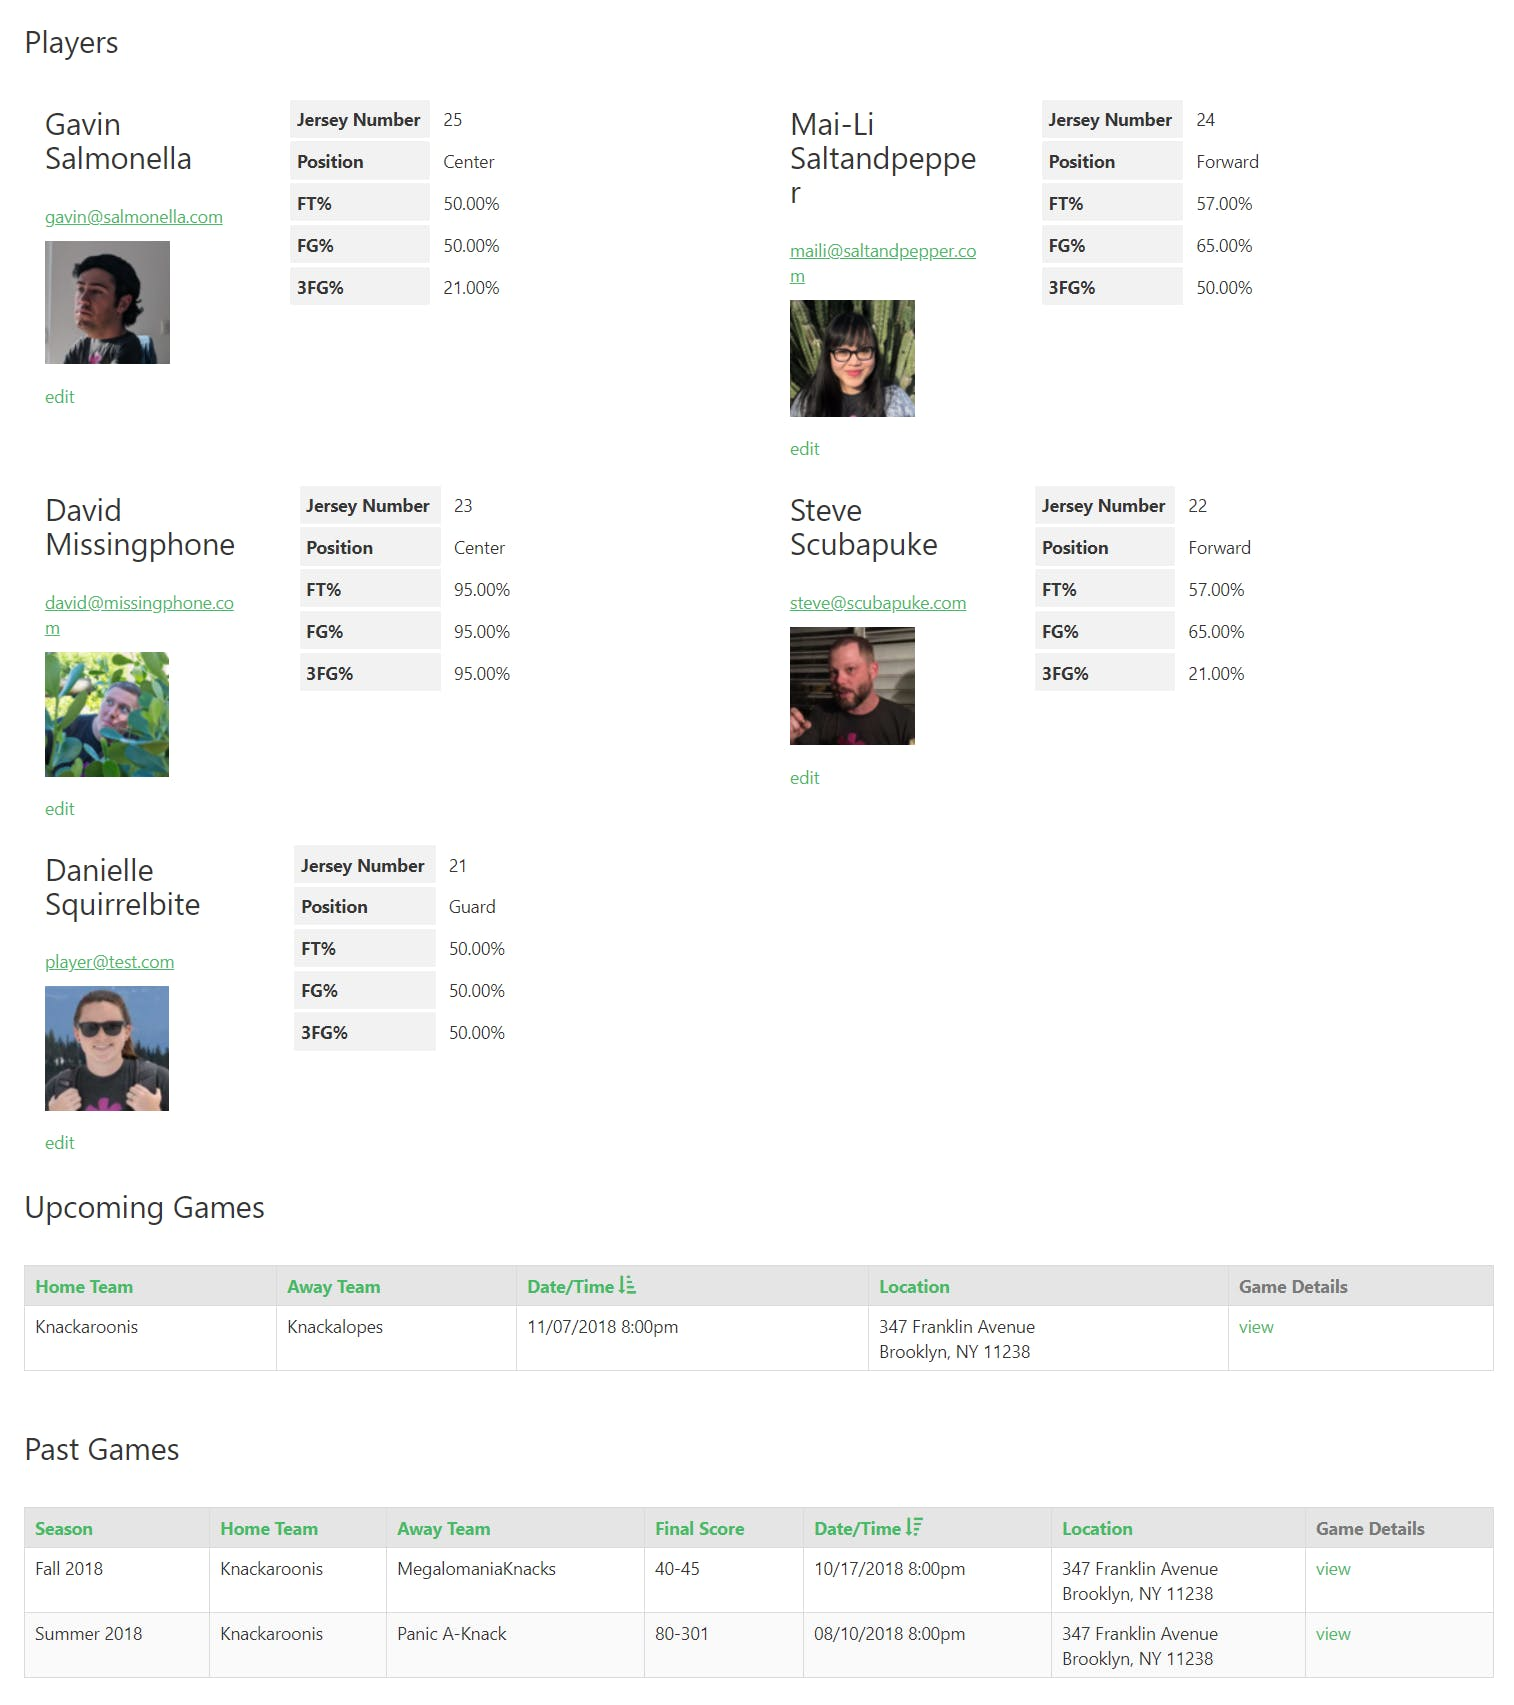 Coaches log in to view their players and games.